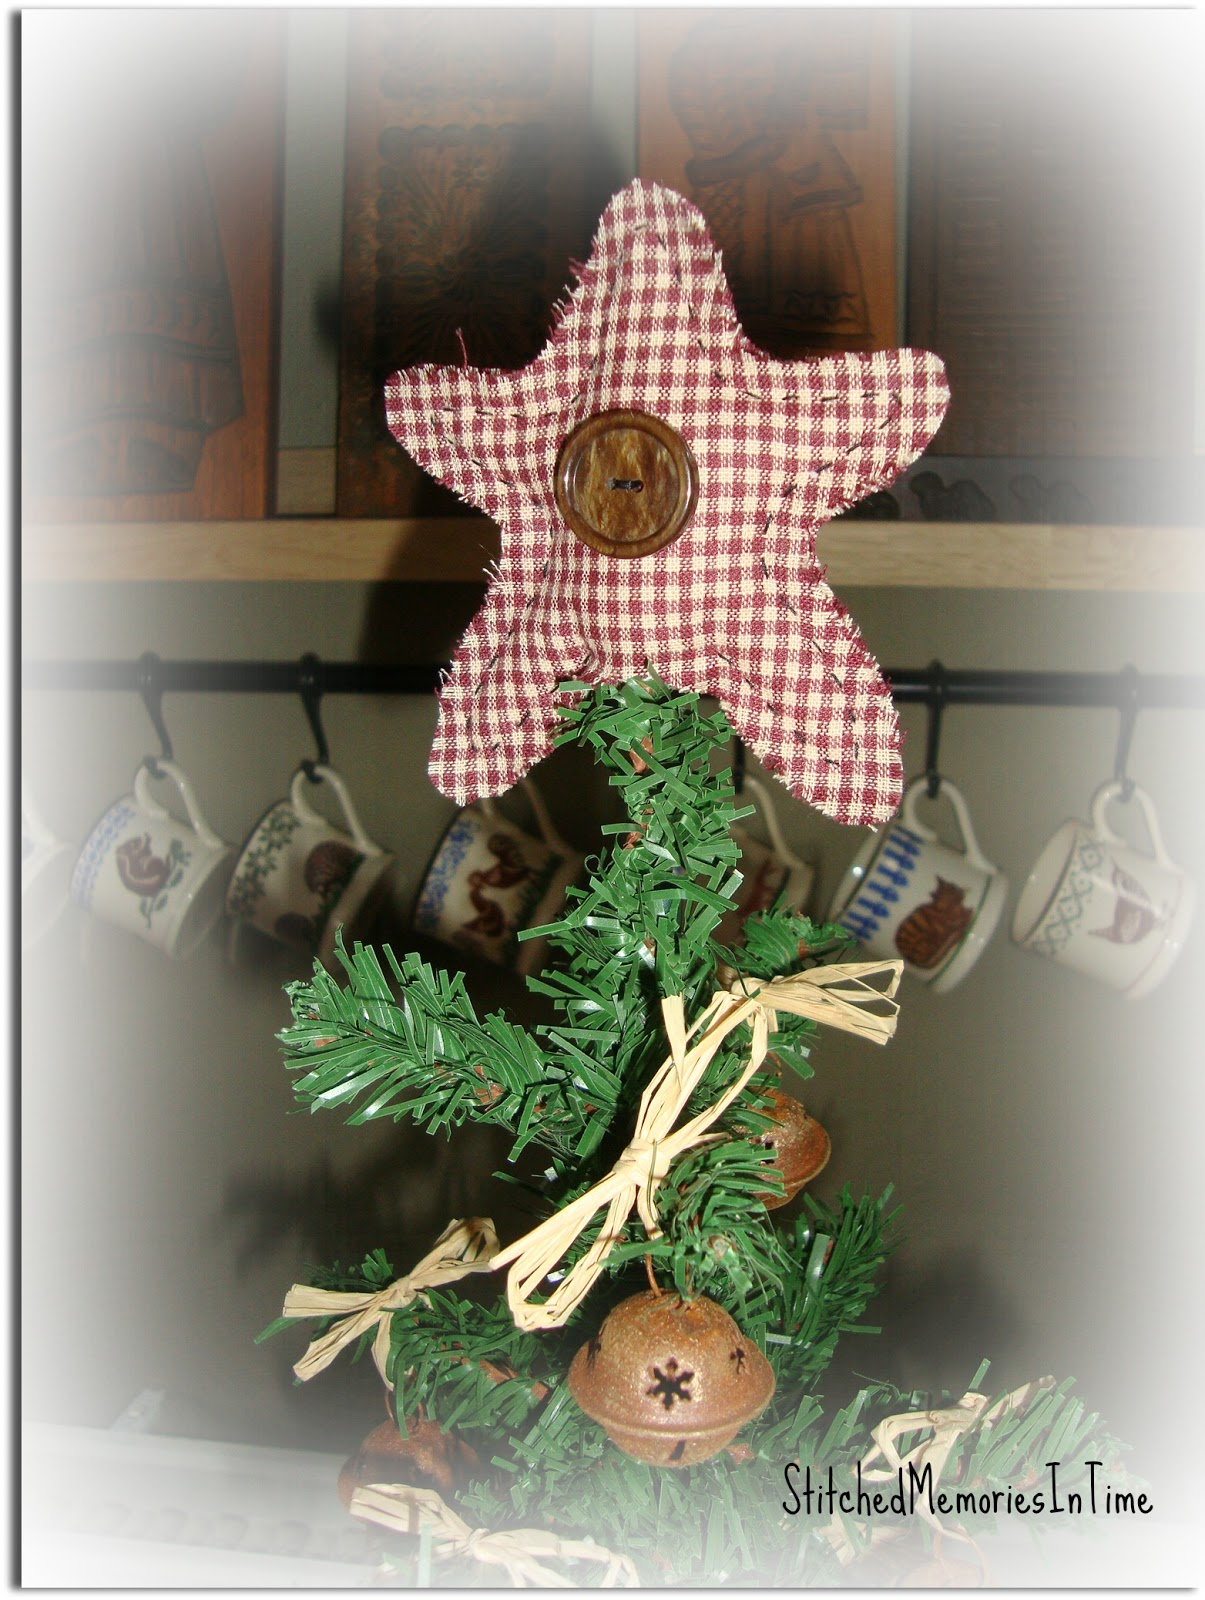 Stitched memories in time a primitive christmas tree